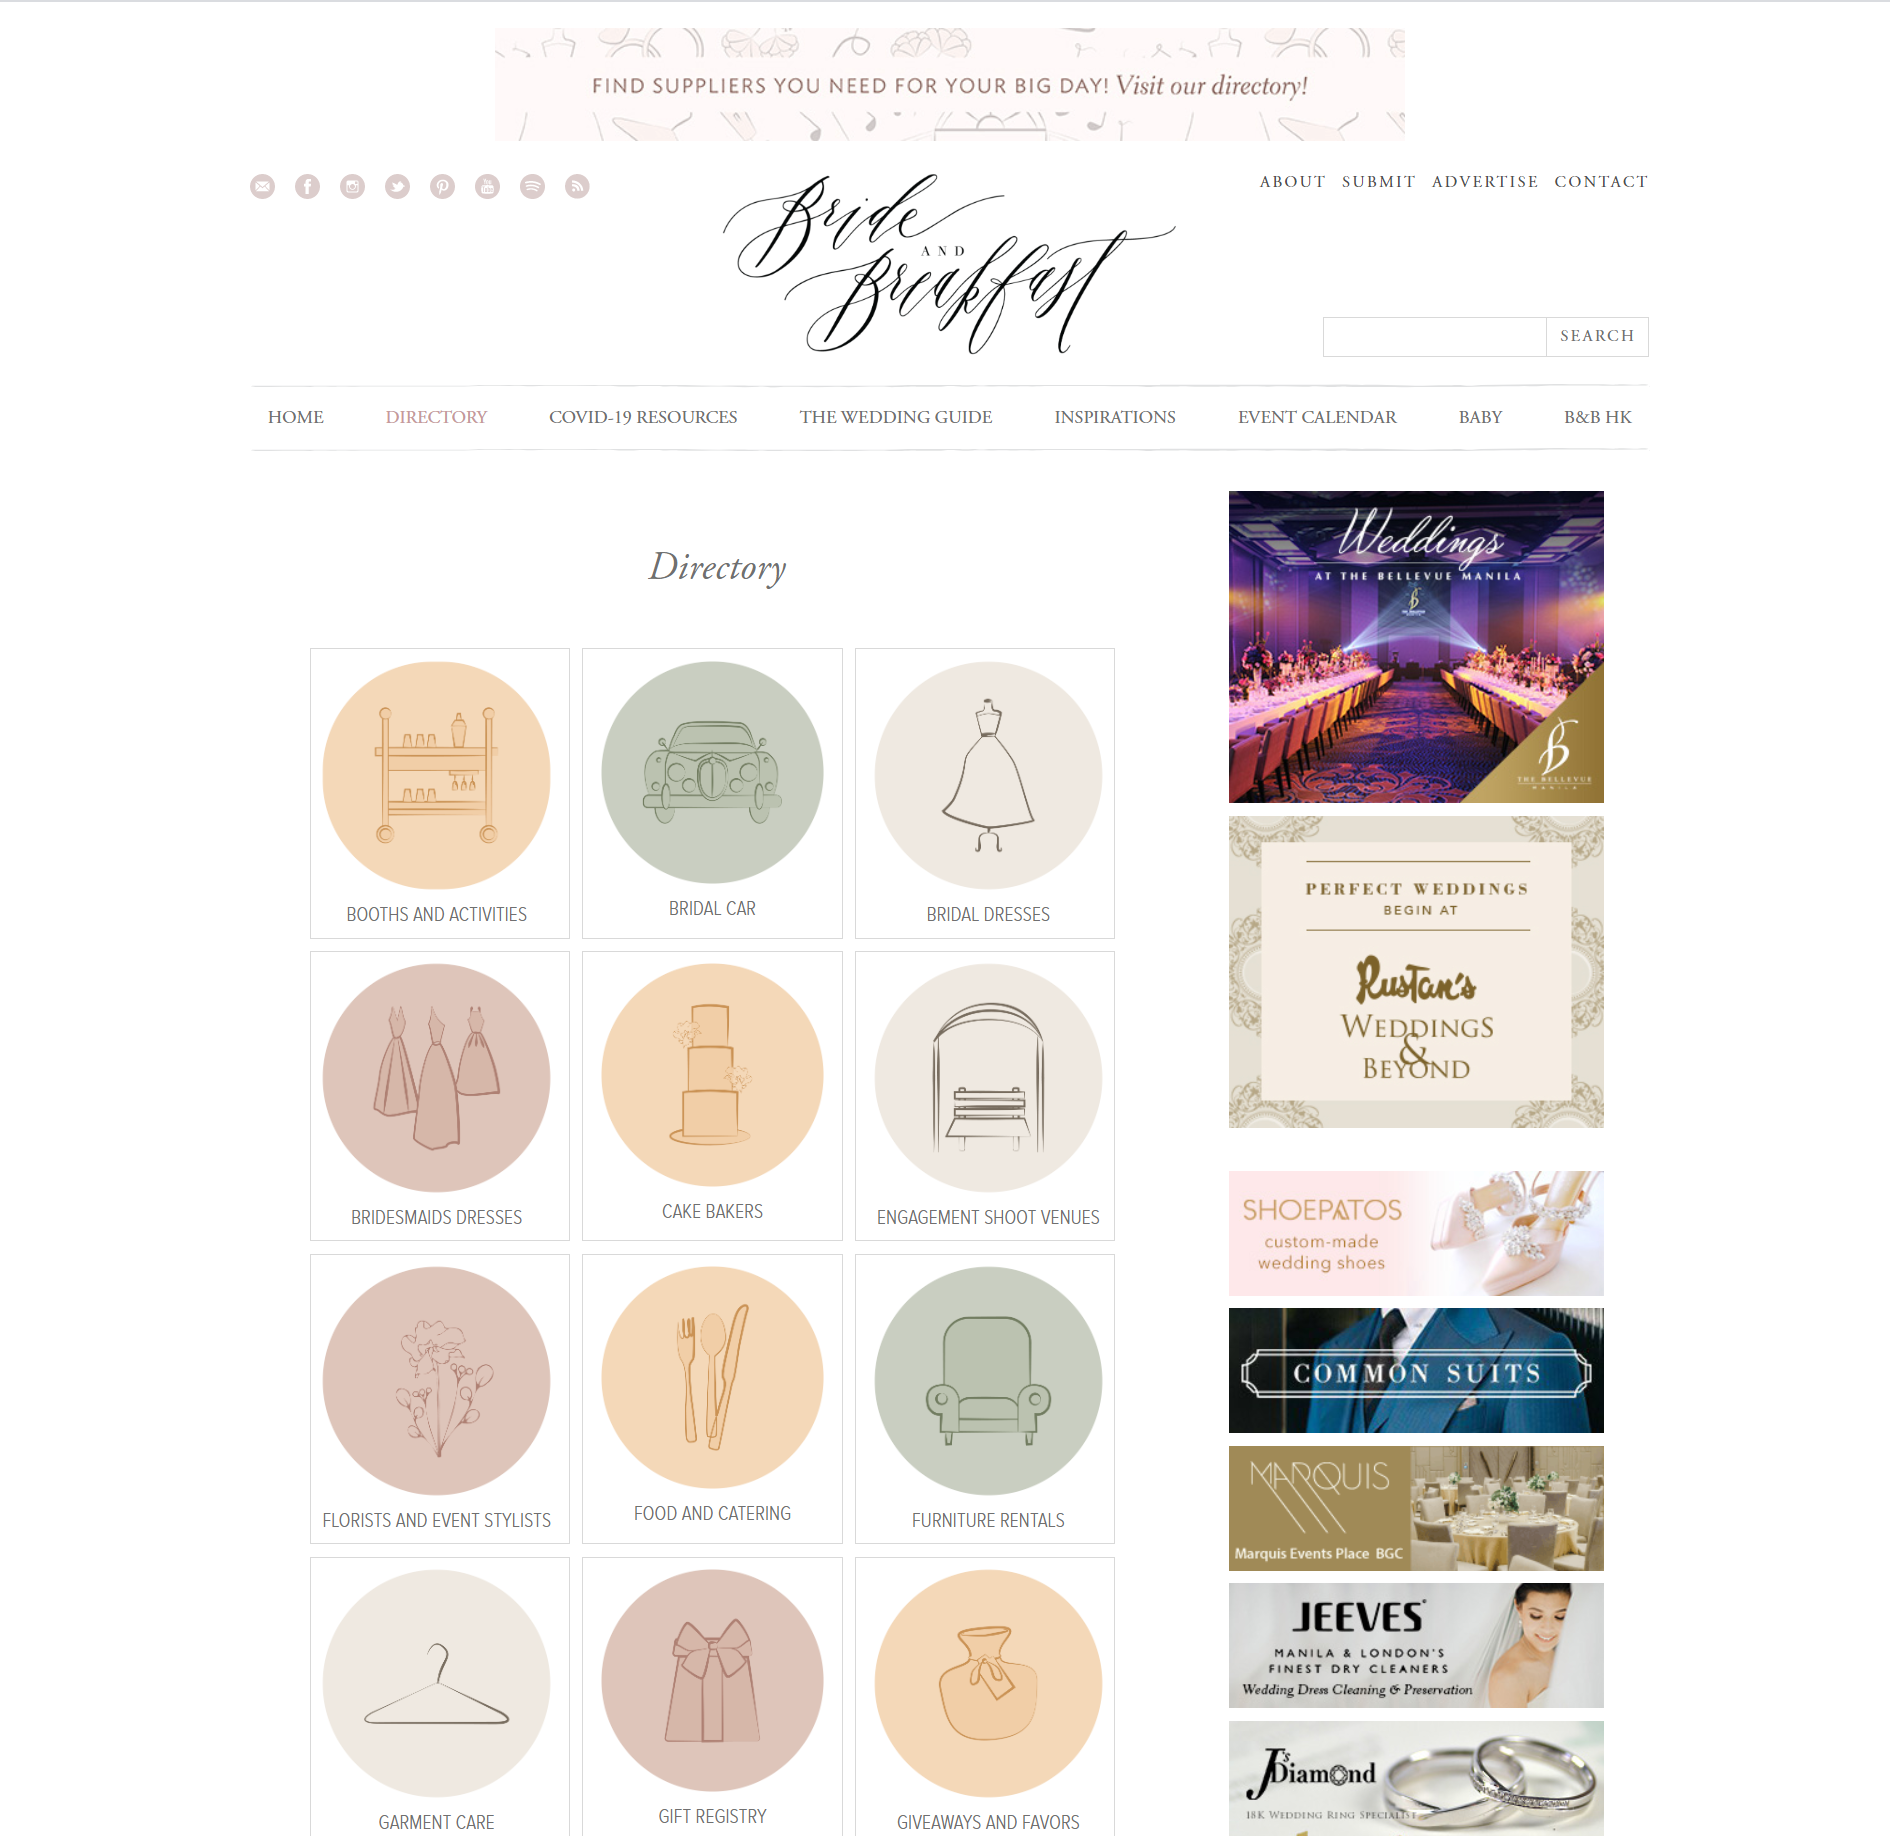 The homepage for Bride and Breakfast, one of the best business directory websites.